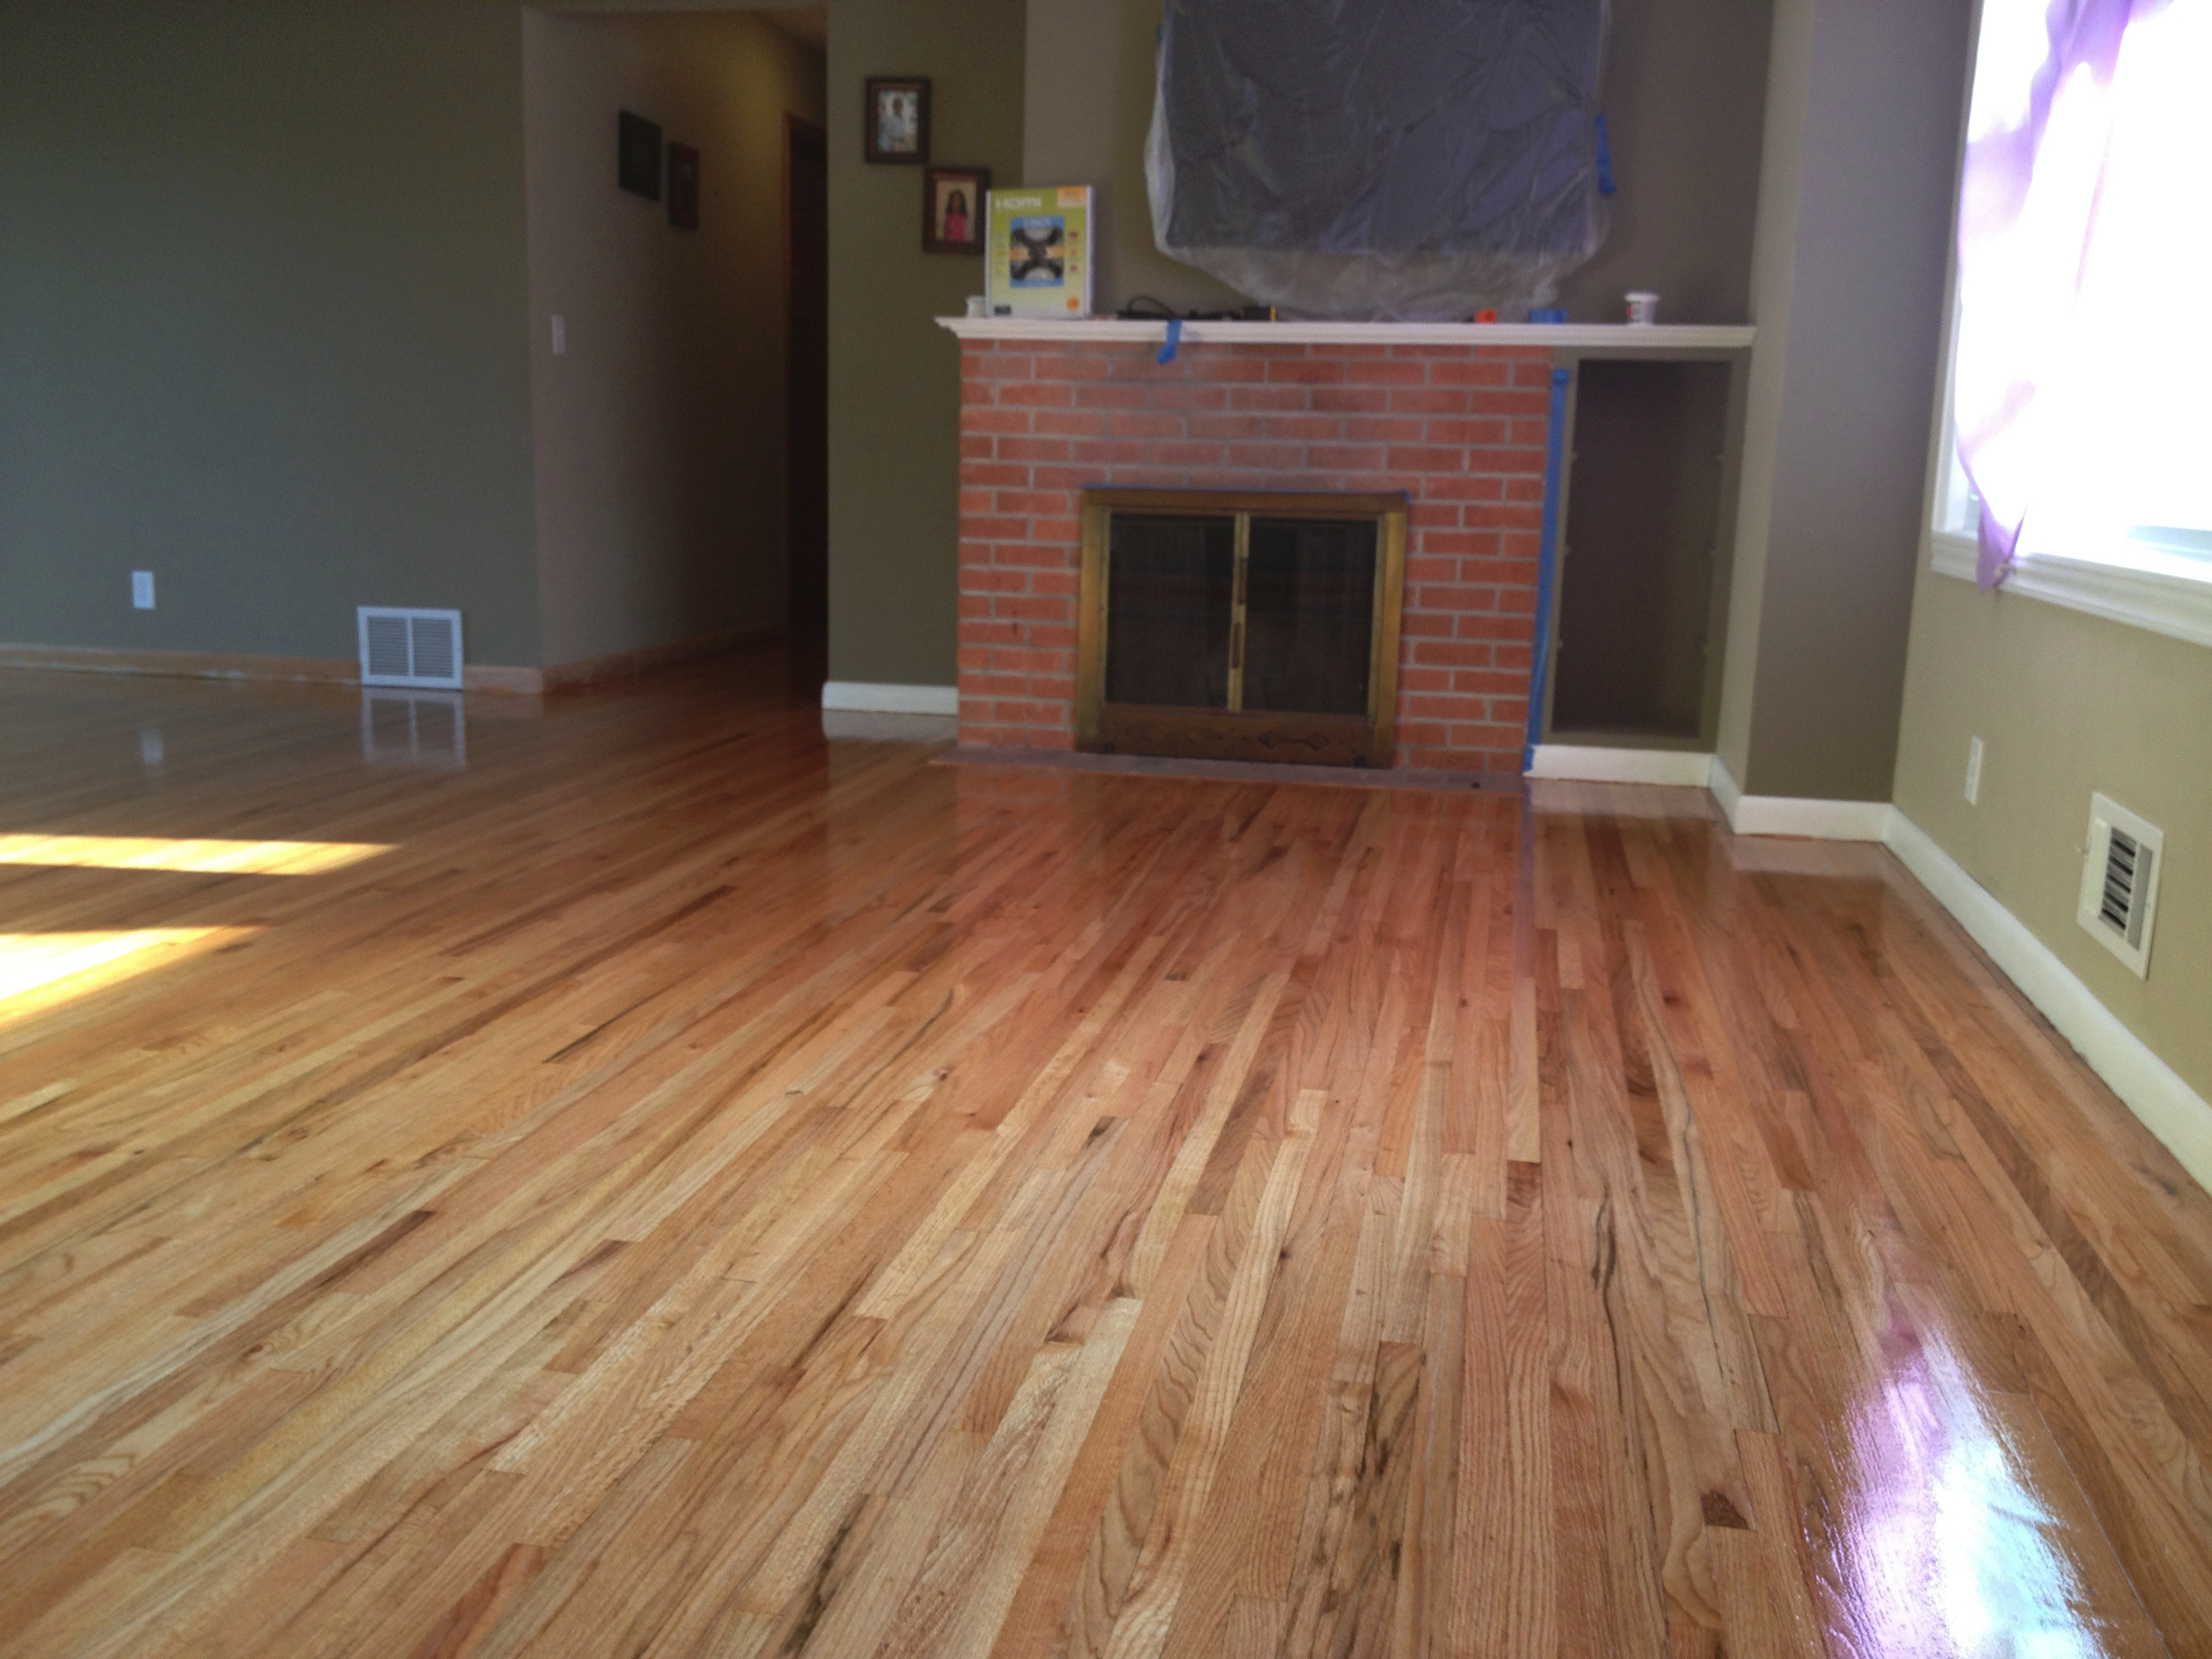 hardwood floor repair refinishing of image 6586 from post restoring old hardwood floors will with with regard to easy hardwood floor refinishing kitchen set restoring old floors will flooring fabulous about unnamed file with